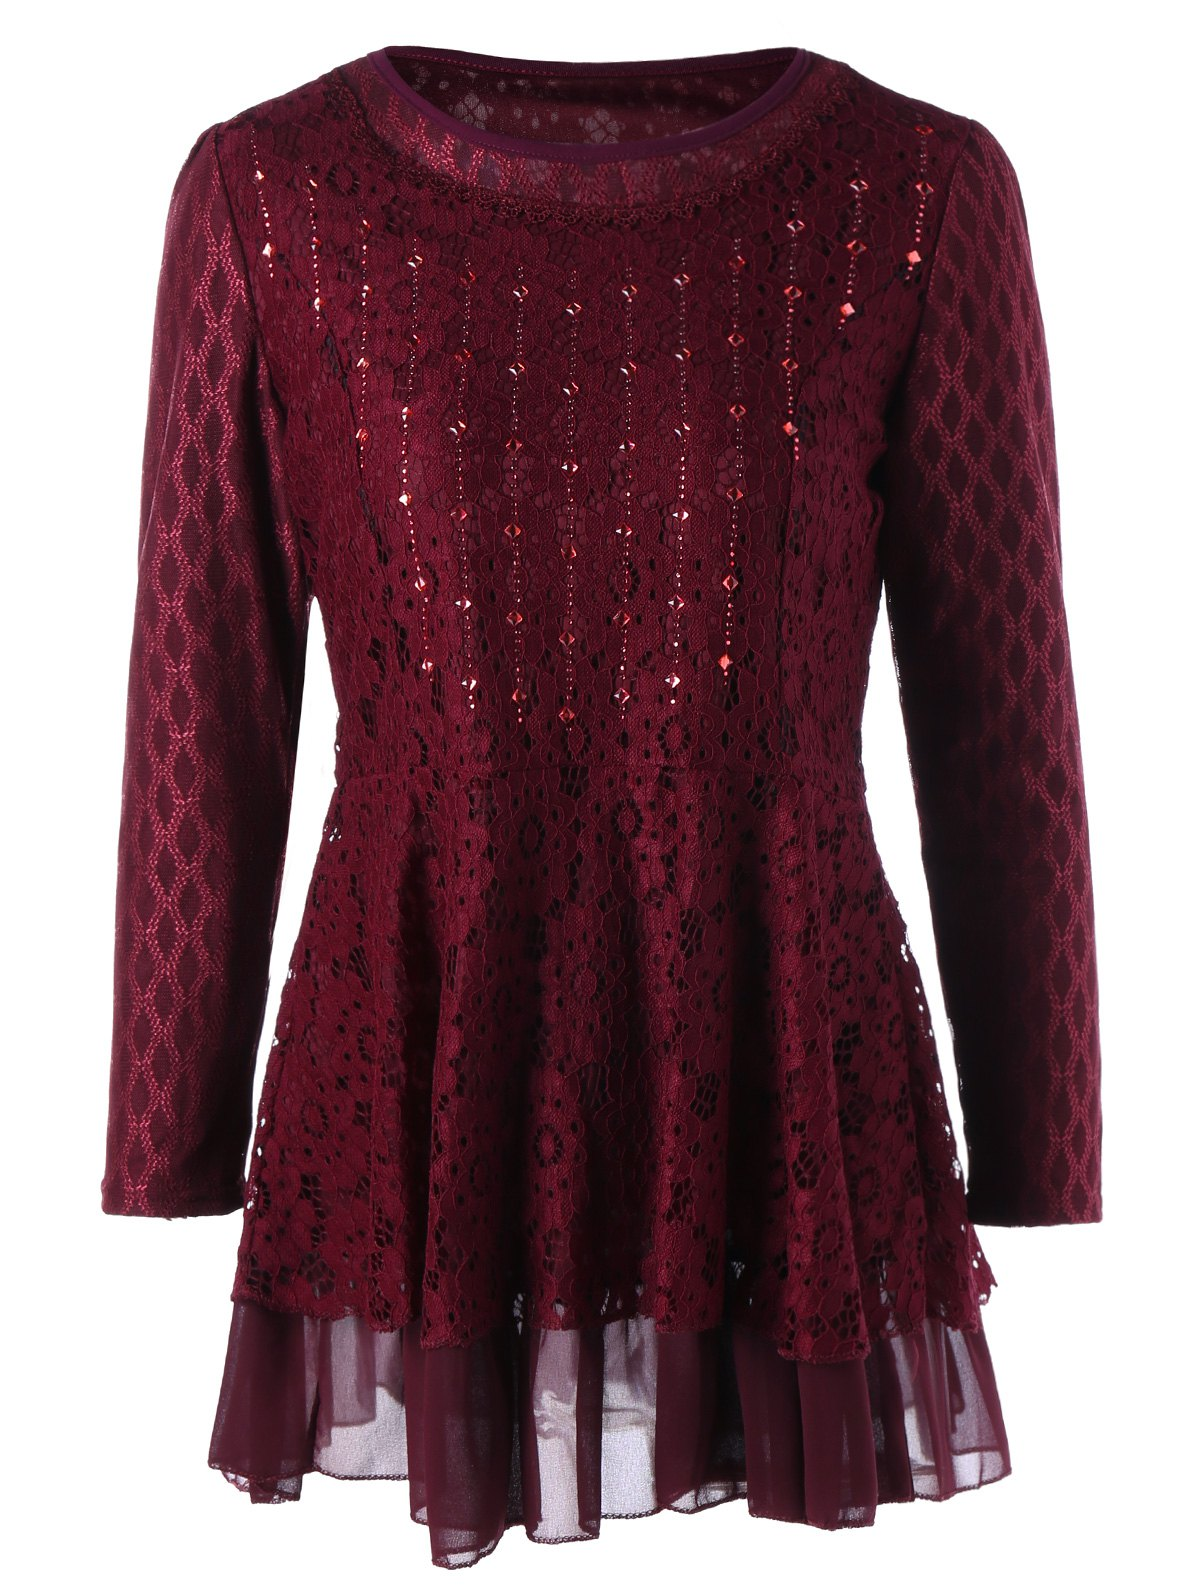 Plus Size Embellished Lace Layered Peplum TopWOMEN<br><br>Size: 5XL; Color: WINE RED; Material: Polyester,Spandex; Shirt Length: Long; Sleeve Length: Full; Collar: Round Neck; Style: Fashion; Season: Fall,Spring; Embellishment: Rhinestone; Pattern Type: Floral; Weight: 0.4100kg; Package Contents: 1 x Blouse;